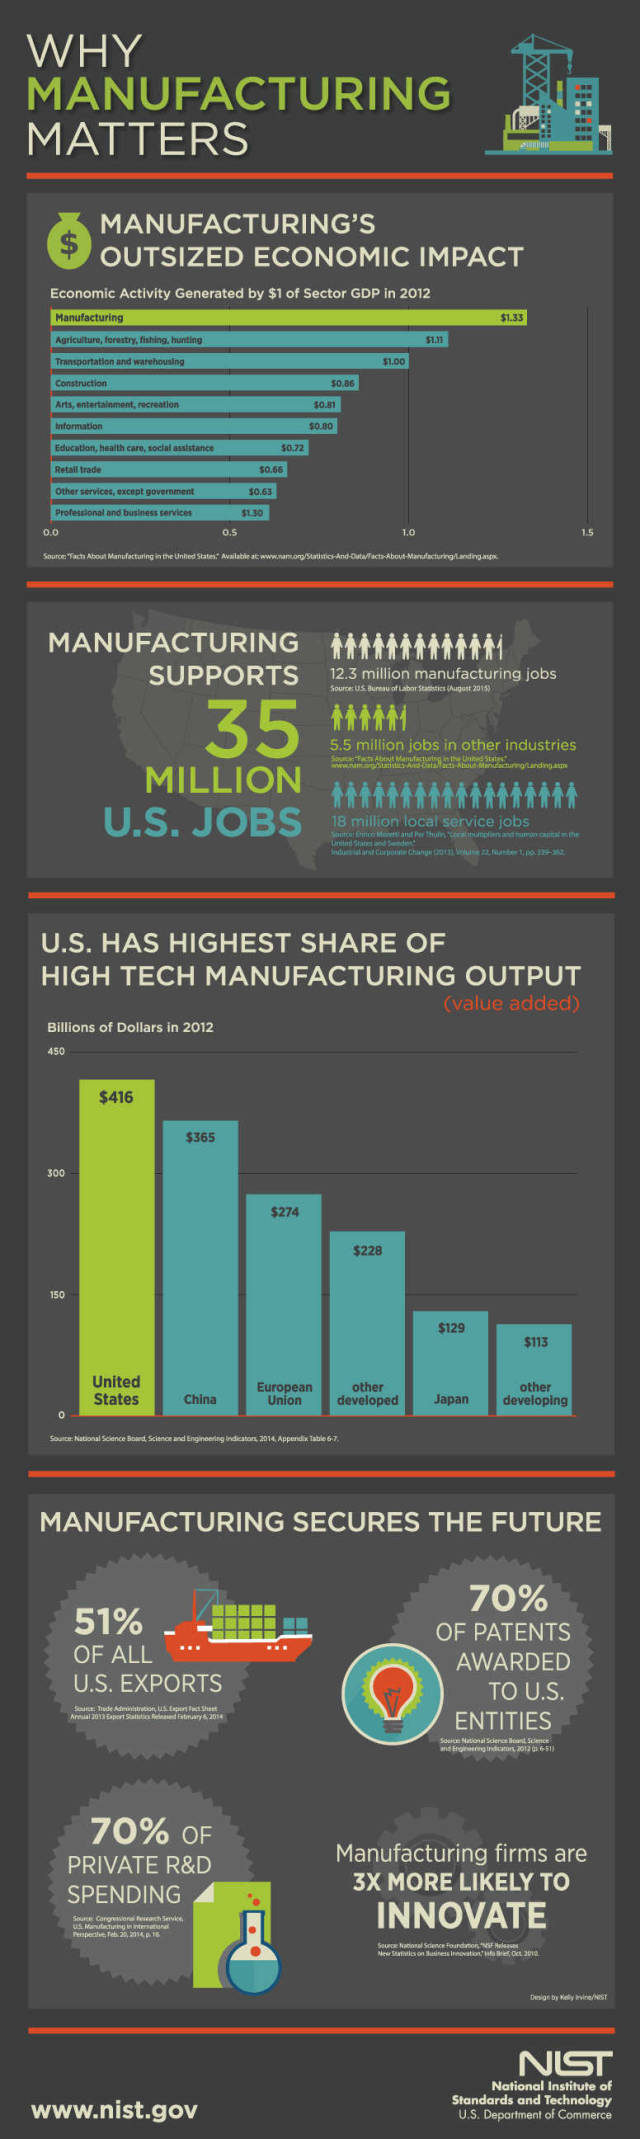 Why Manufacturing matters - infographic